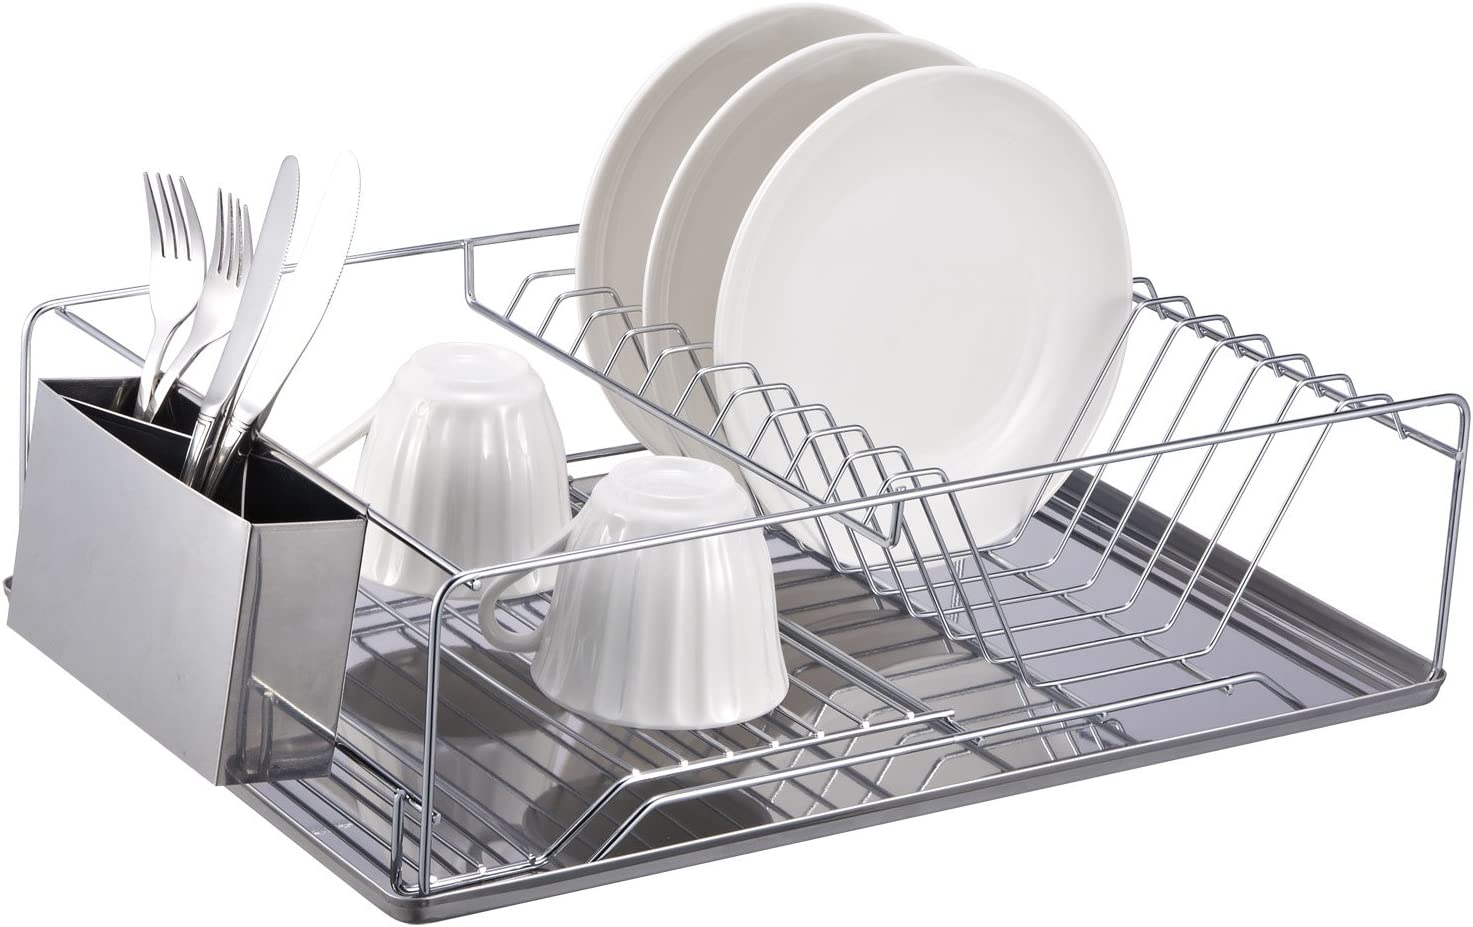 Home Basics Chrome Dish Rack with Stainless Steel Tray